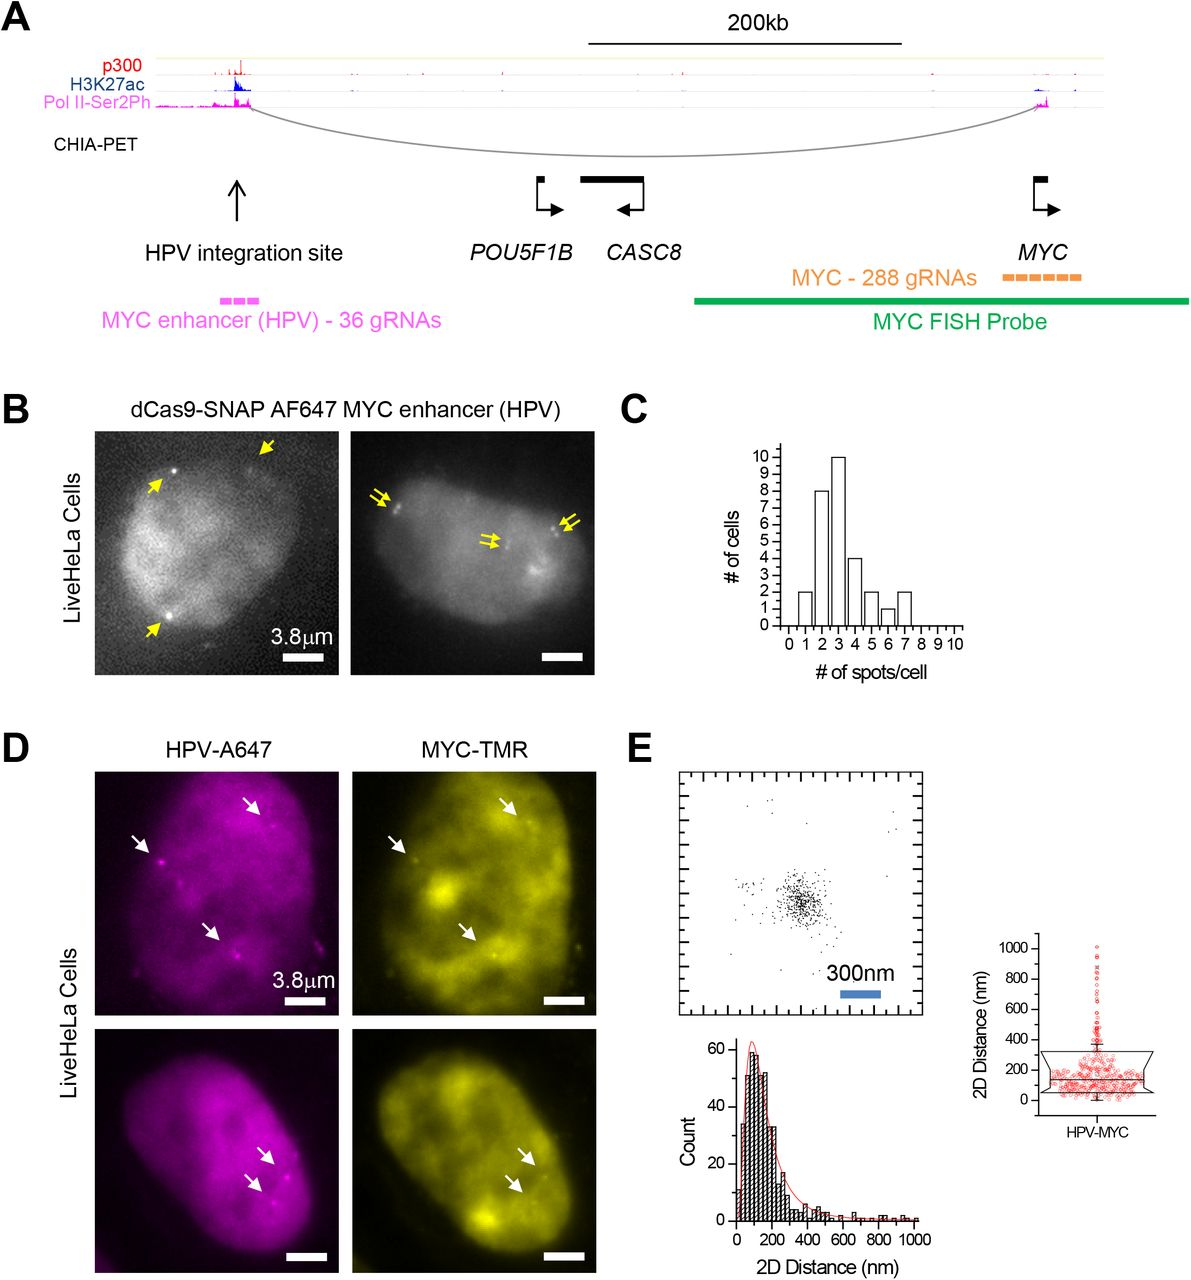 Pools of pre-assembled RNPs enable visualizing the MYC locus in live HeLa cells. ( A ) Organization of the extended MYC locus though proximity ligation (ChIA-PET) and ChIP-Seq assays. HeLa Pol II ChIA-PET data (GSM832461) ( Li et al., 2012 ),as well as ChIP-Seq data for p300 (GSM935500), H3K27ac (GSM733684) and Pol2-Ser2Ph (GSM935383), are visualized using the WashU Epigenome Browser ( Zhou et al., 2011 ). ( B ) Visualization of the HPV integration site using Alexa 647-labeled dCas9 RNPs, assembled with a pool of 36 distinct gRNAs. The right cell contains doublets of closely-spaced puncta, indicative of replicated loci in S/G2. ( C ) Distribution of number of discernible Alexa 647-HPV spots per cell. ( D ) Two-color imaging of HPV integration site (Alexa 647) and MYC (TMR) using co-delivery of preassembled RNPs in live HeLa cells. ( E ) 2D scatter plot of relative positions and statistics (histogram and box plot) of 2D distances between Alexa 647-HPV and TMR-MYC in live HeLa cells. 2D distance is 177±155 nm (mean±S.D.; n =472 measurements from > 30 loci).